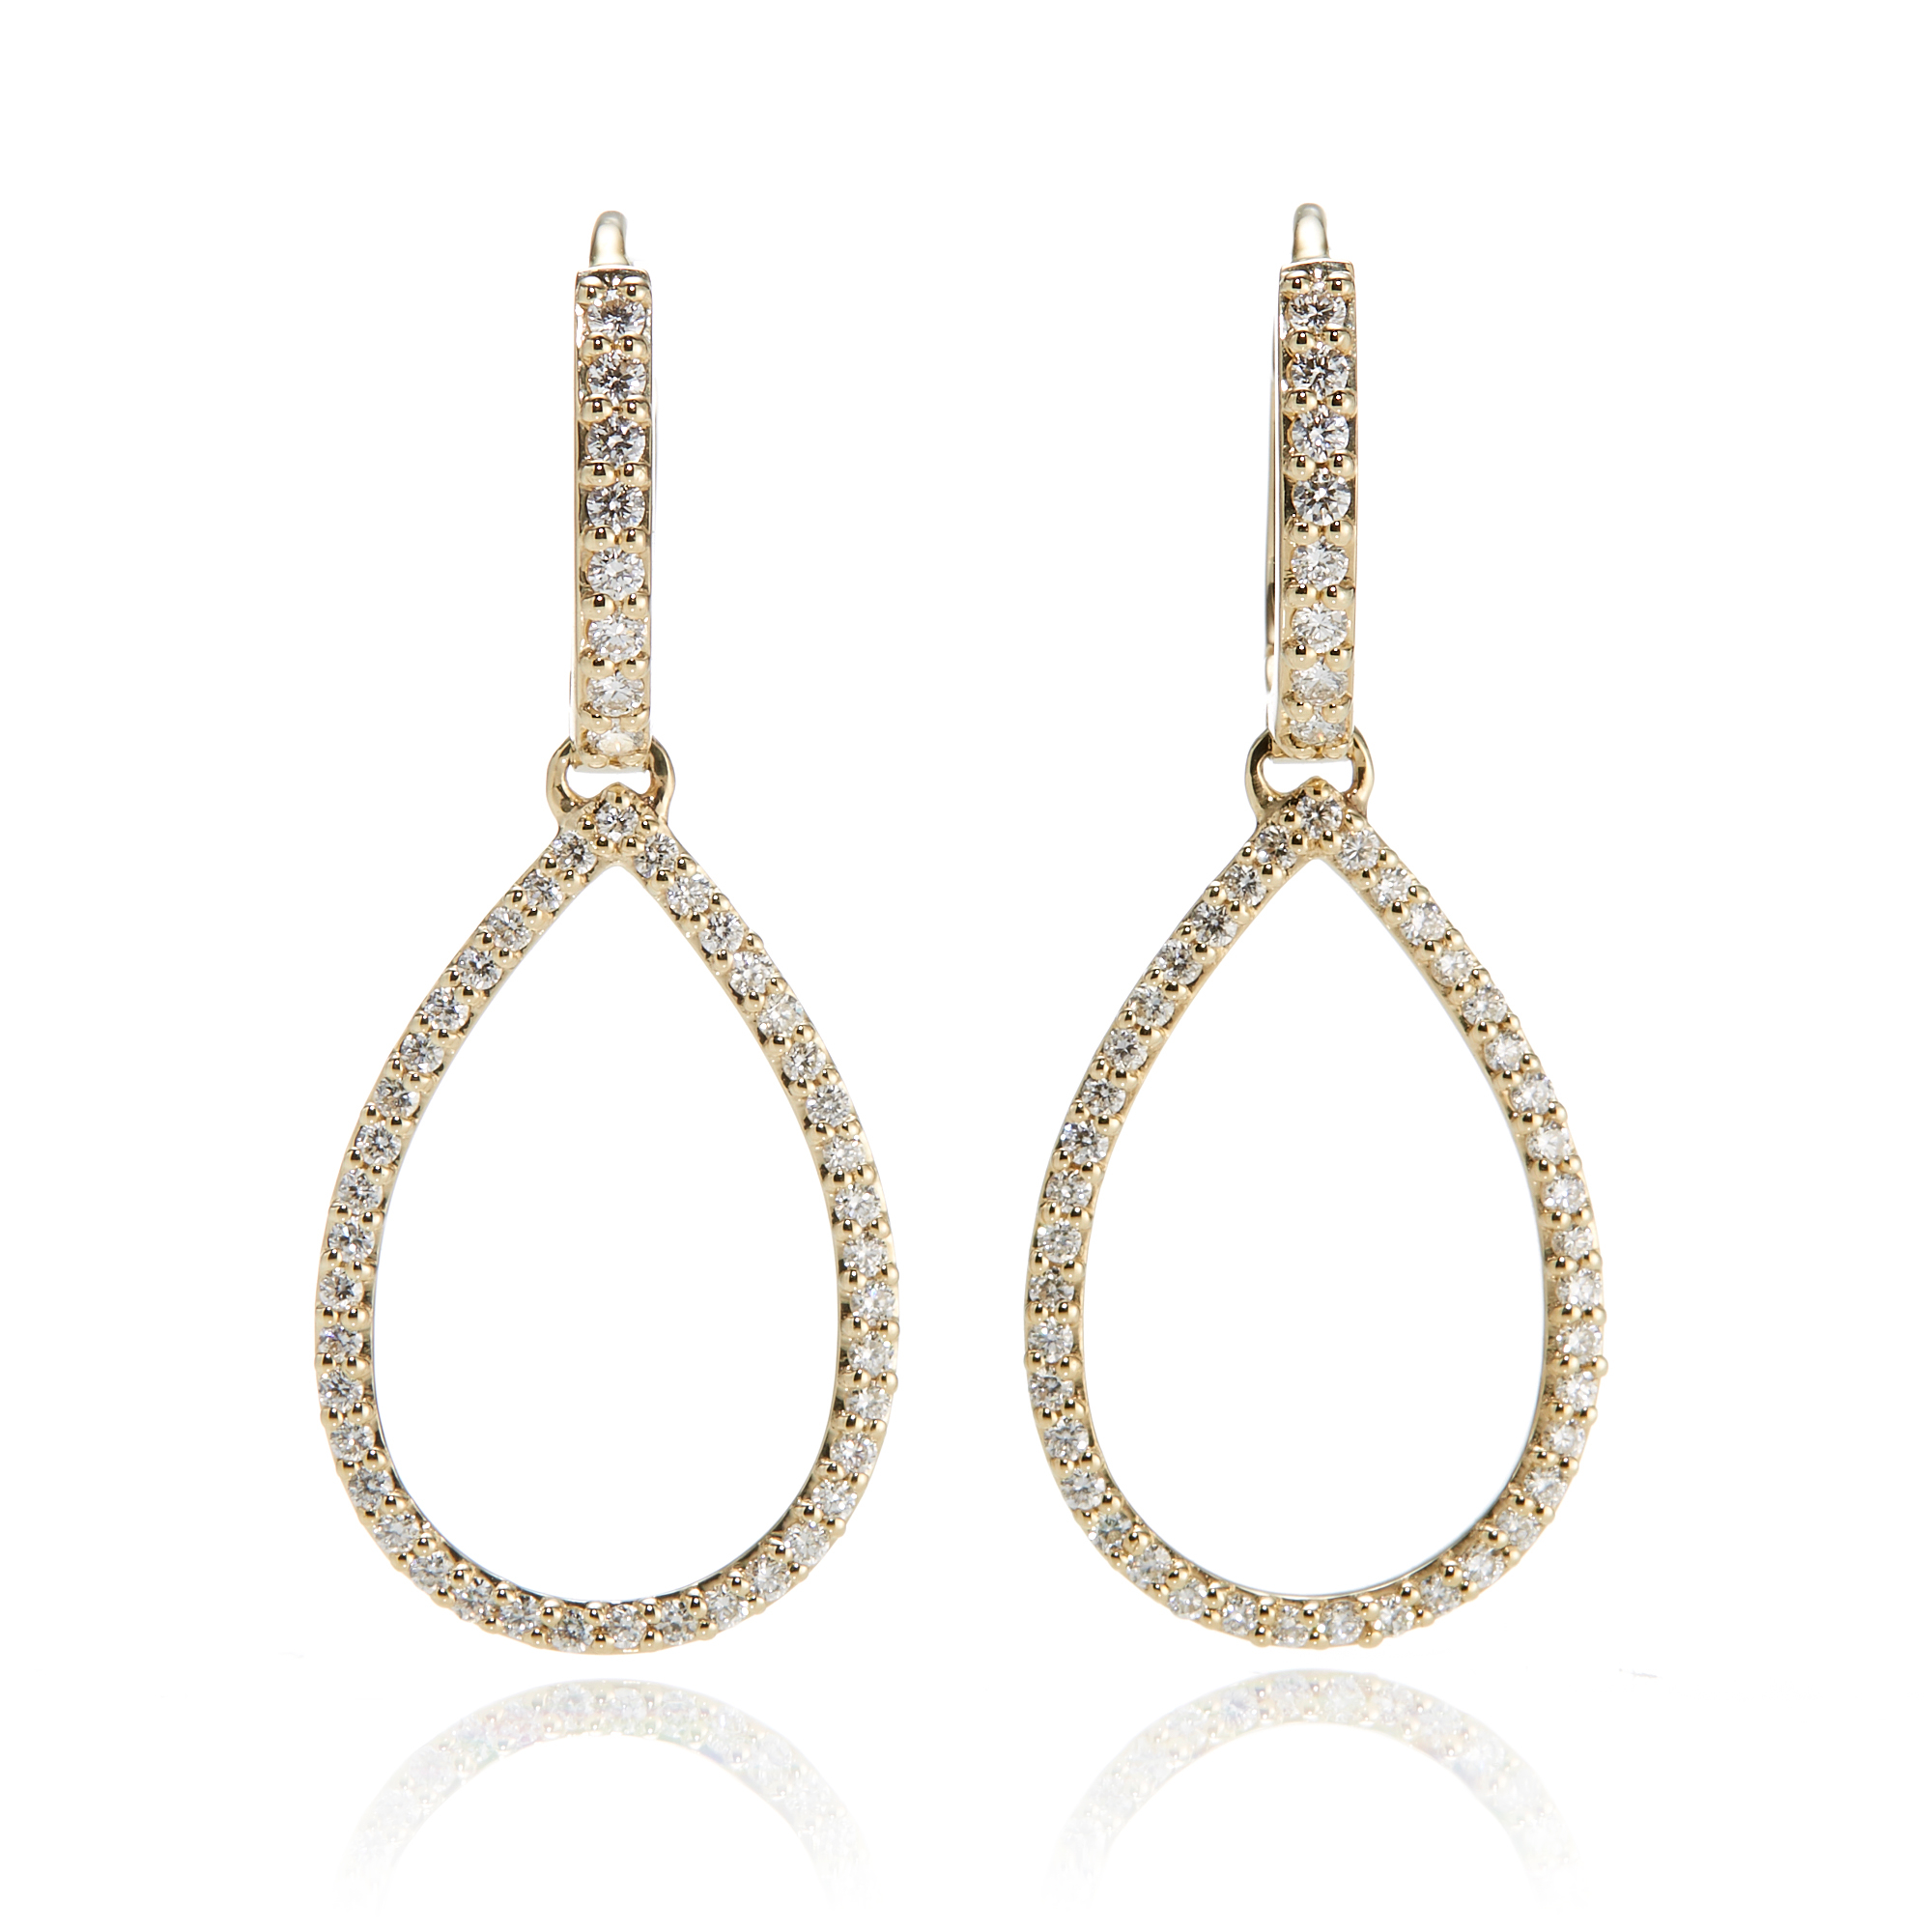 Gump's Openwork Diamond Teardrop Hoop Earrings